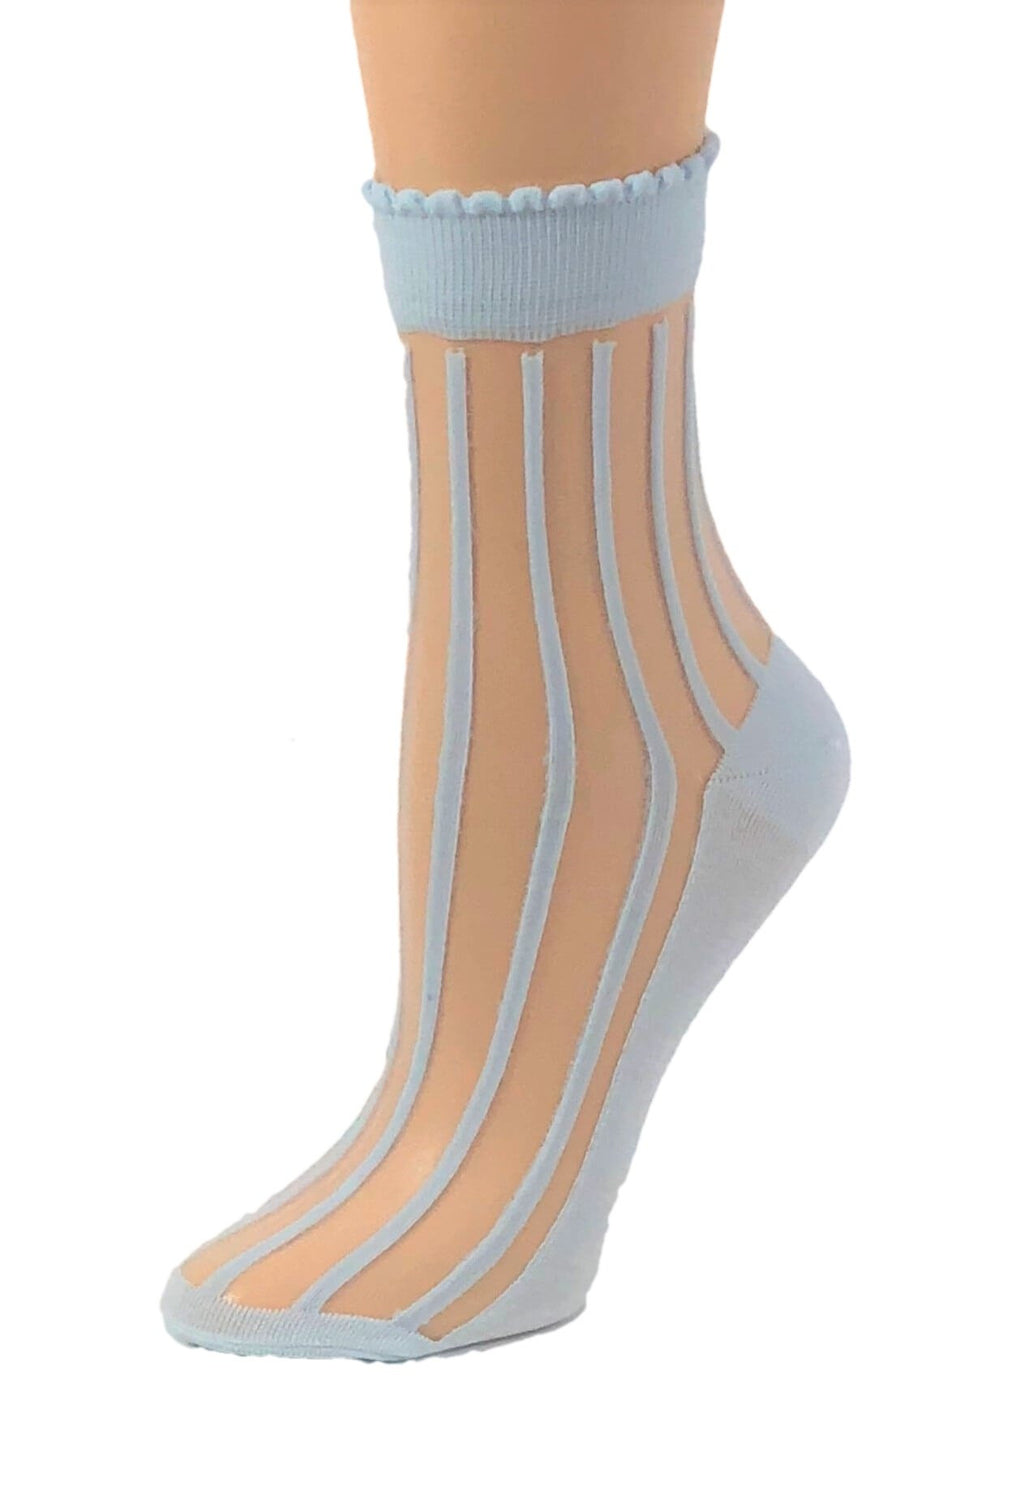 Aqua Striped Sheer Socks - Global Trendz Fashion®